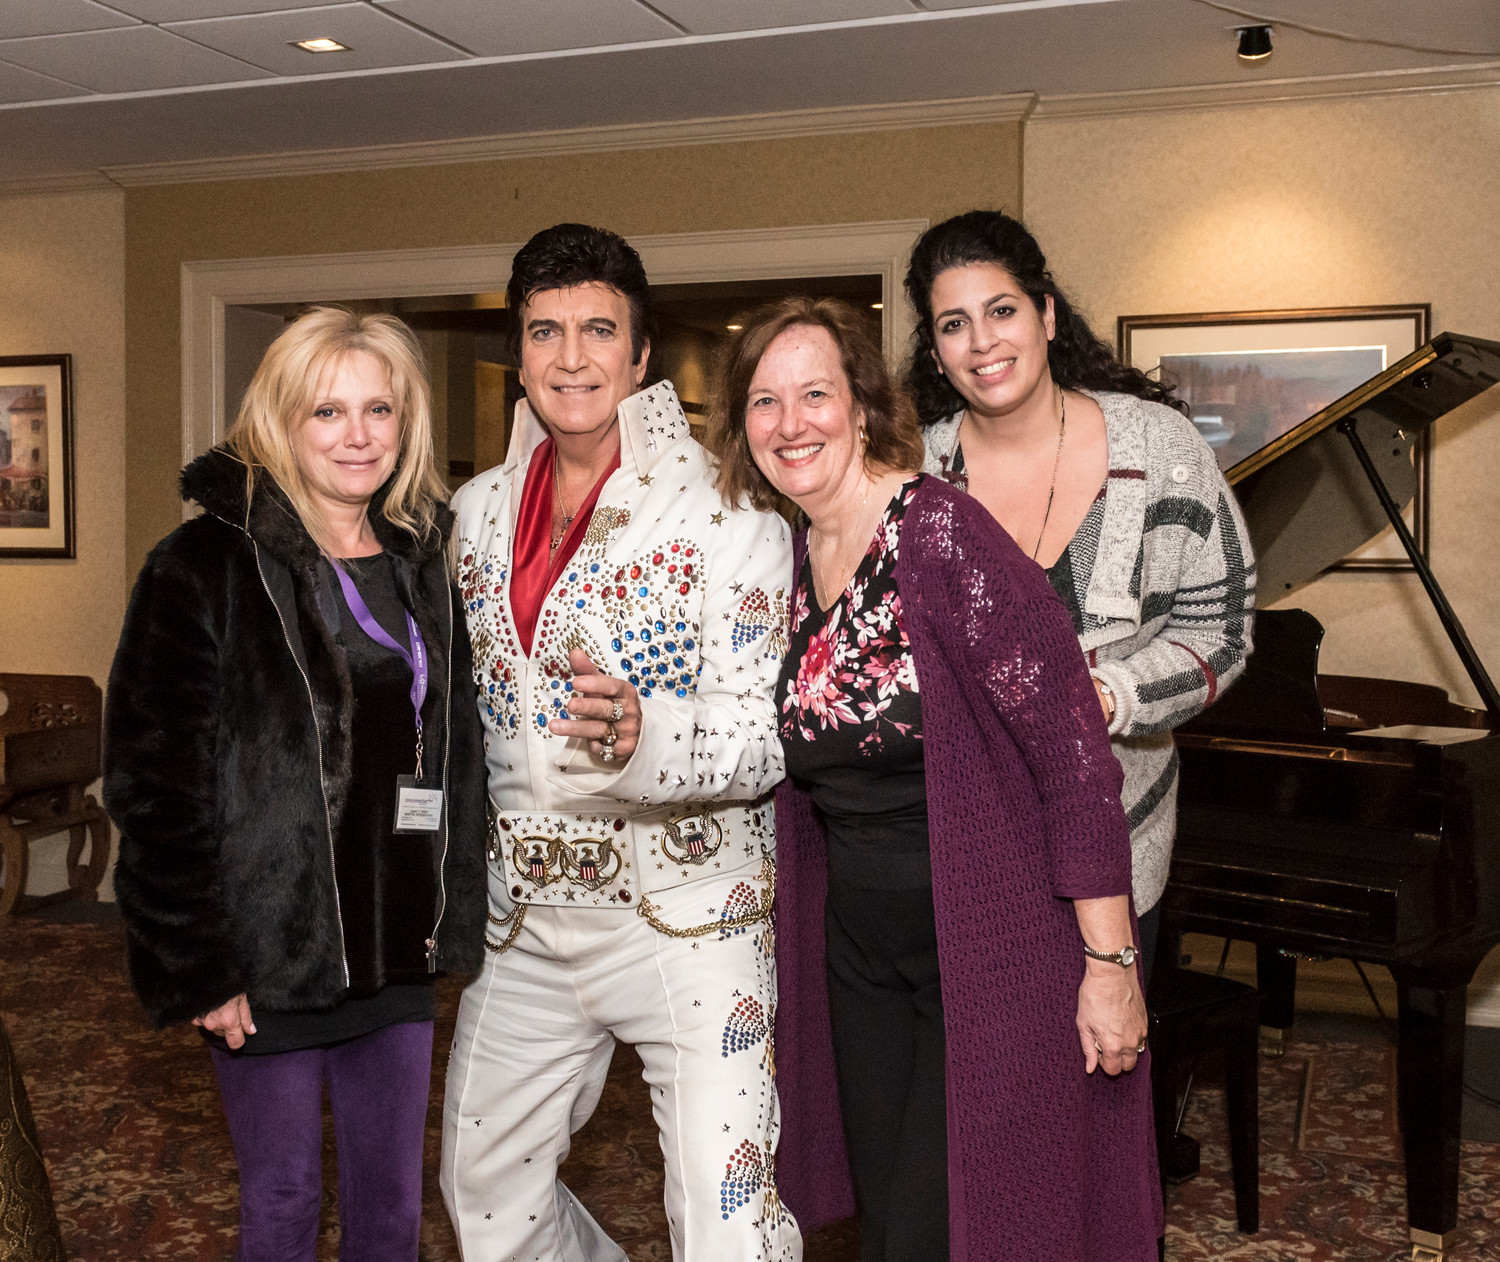 Elvis impersonator Don Anthony gave a signature King of rock 'n' roll stance with devoted fans Bonnie Rosen, left, Gail Kump and Stella Shank.